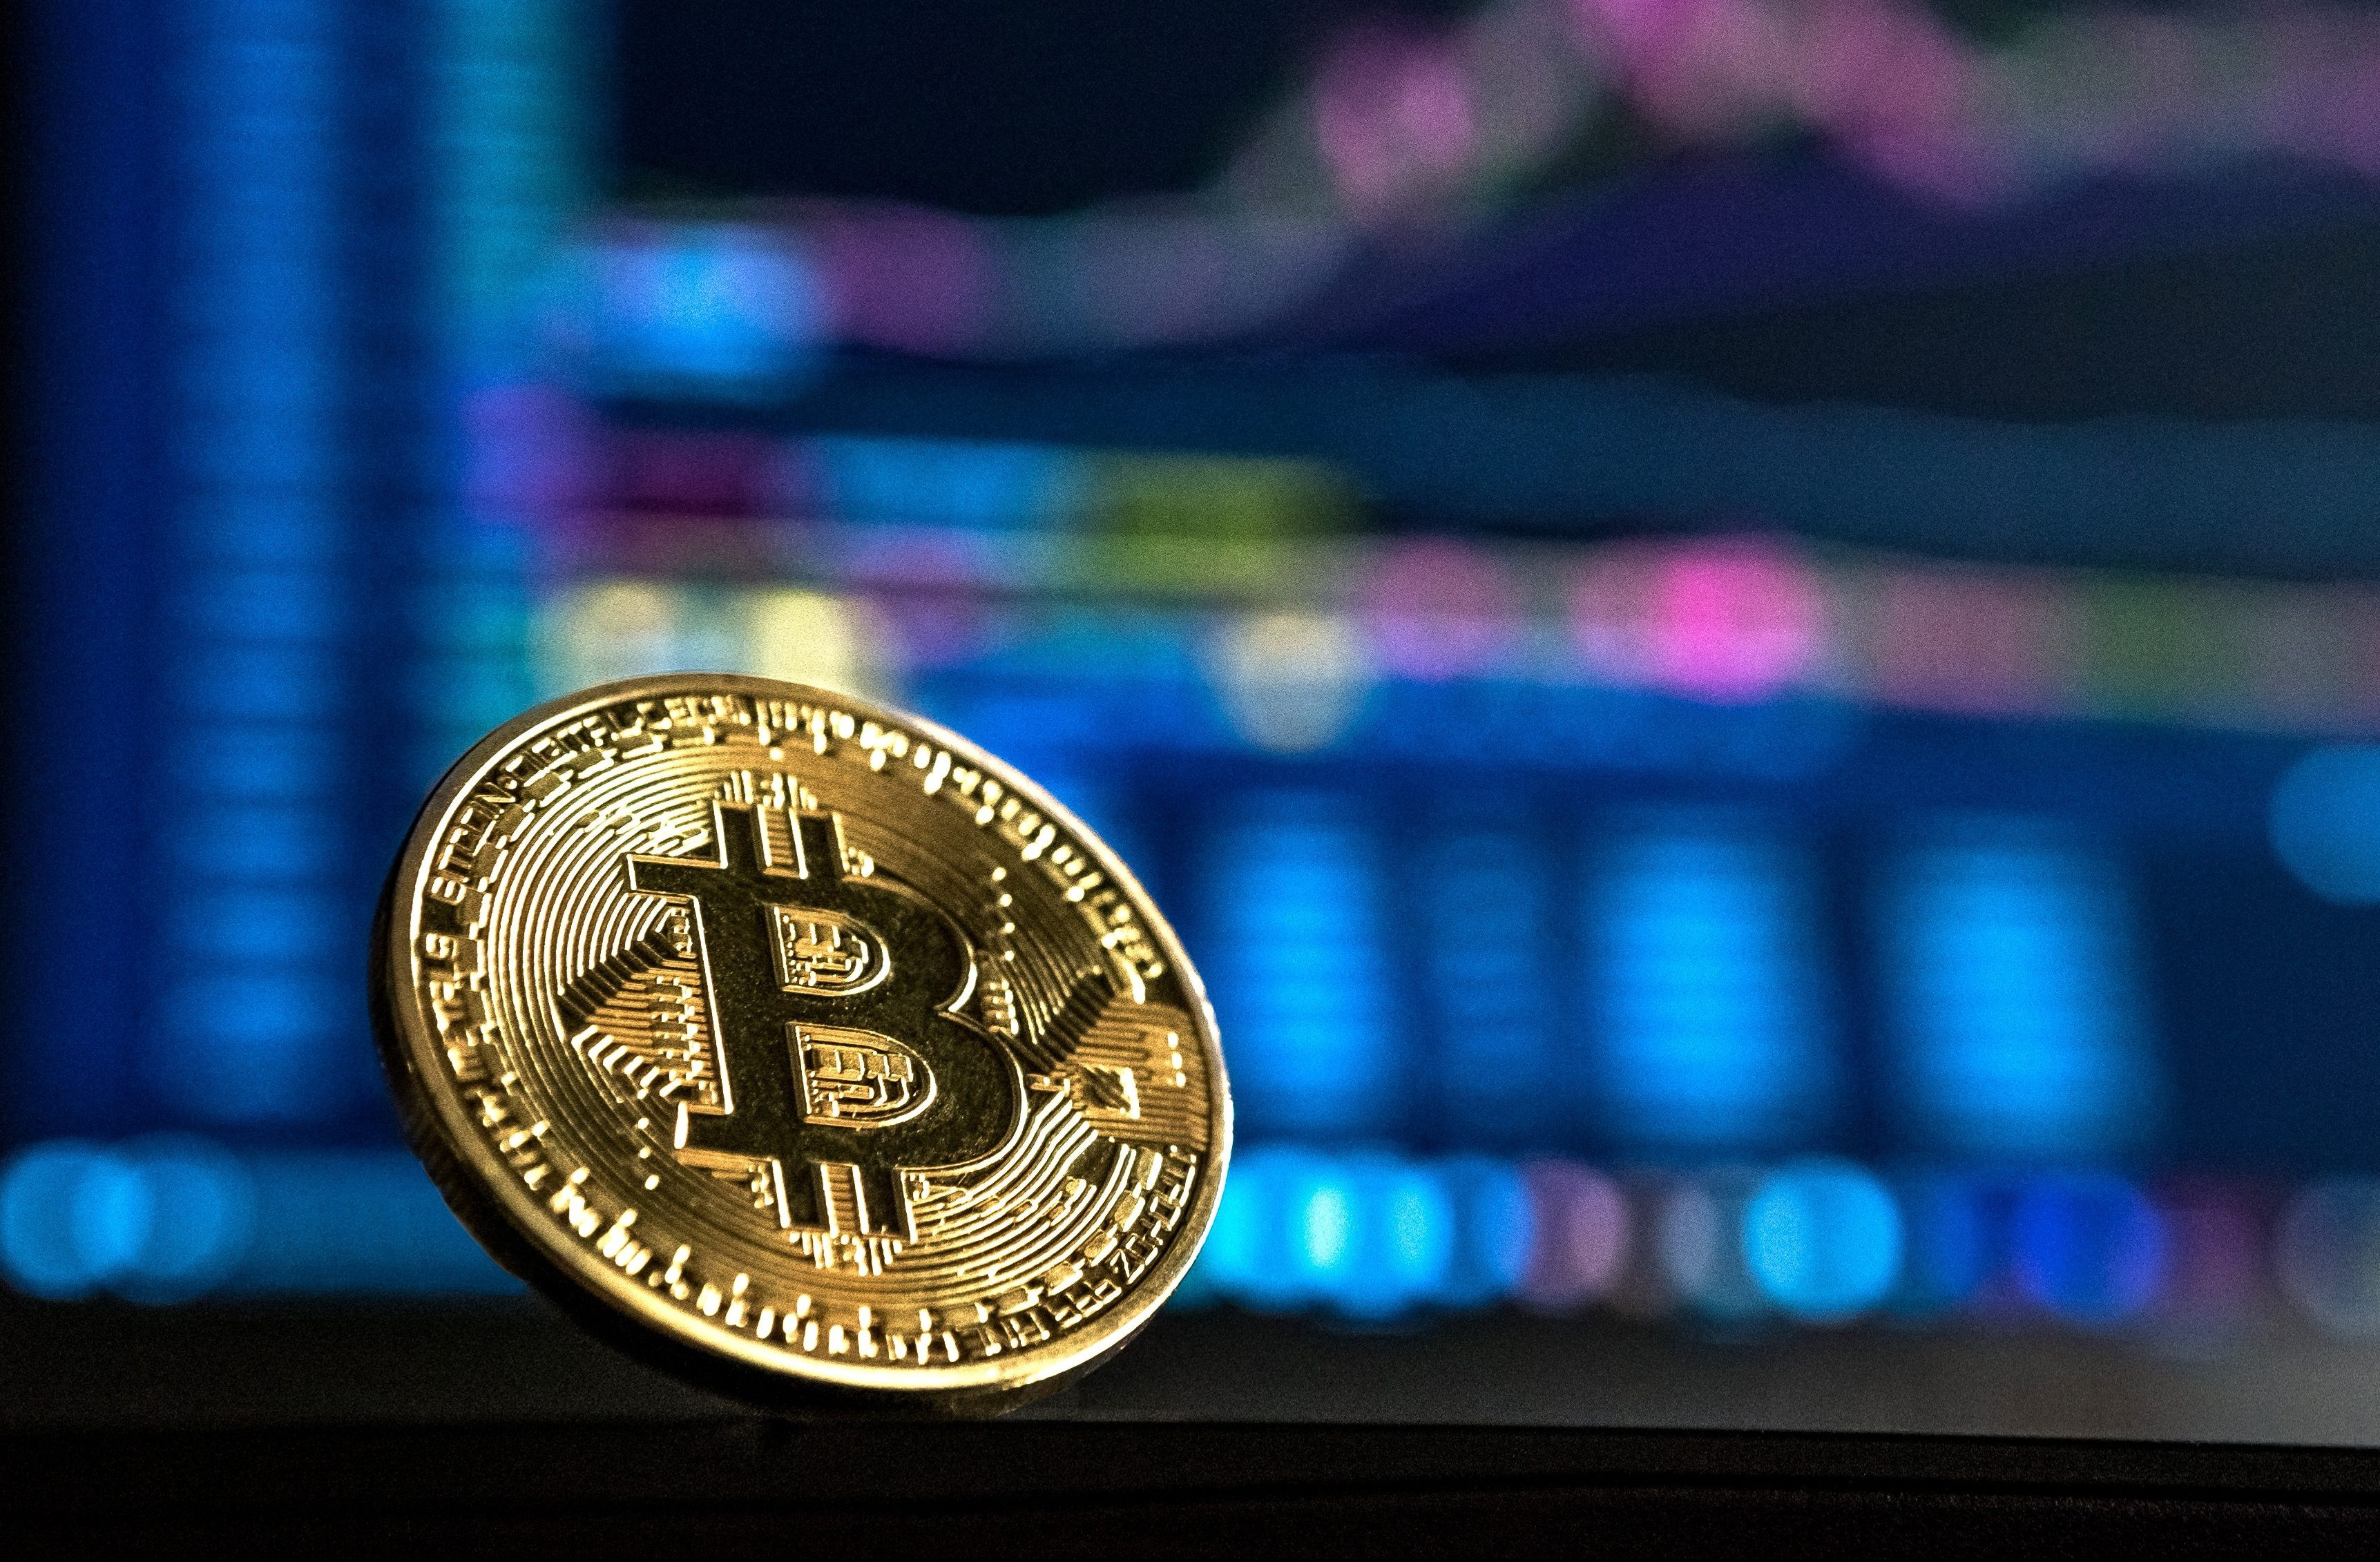 Why are so many law firms accepting bitcoin?